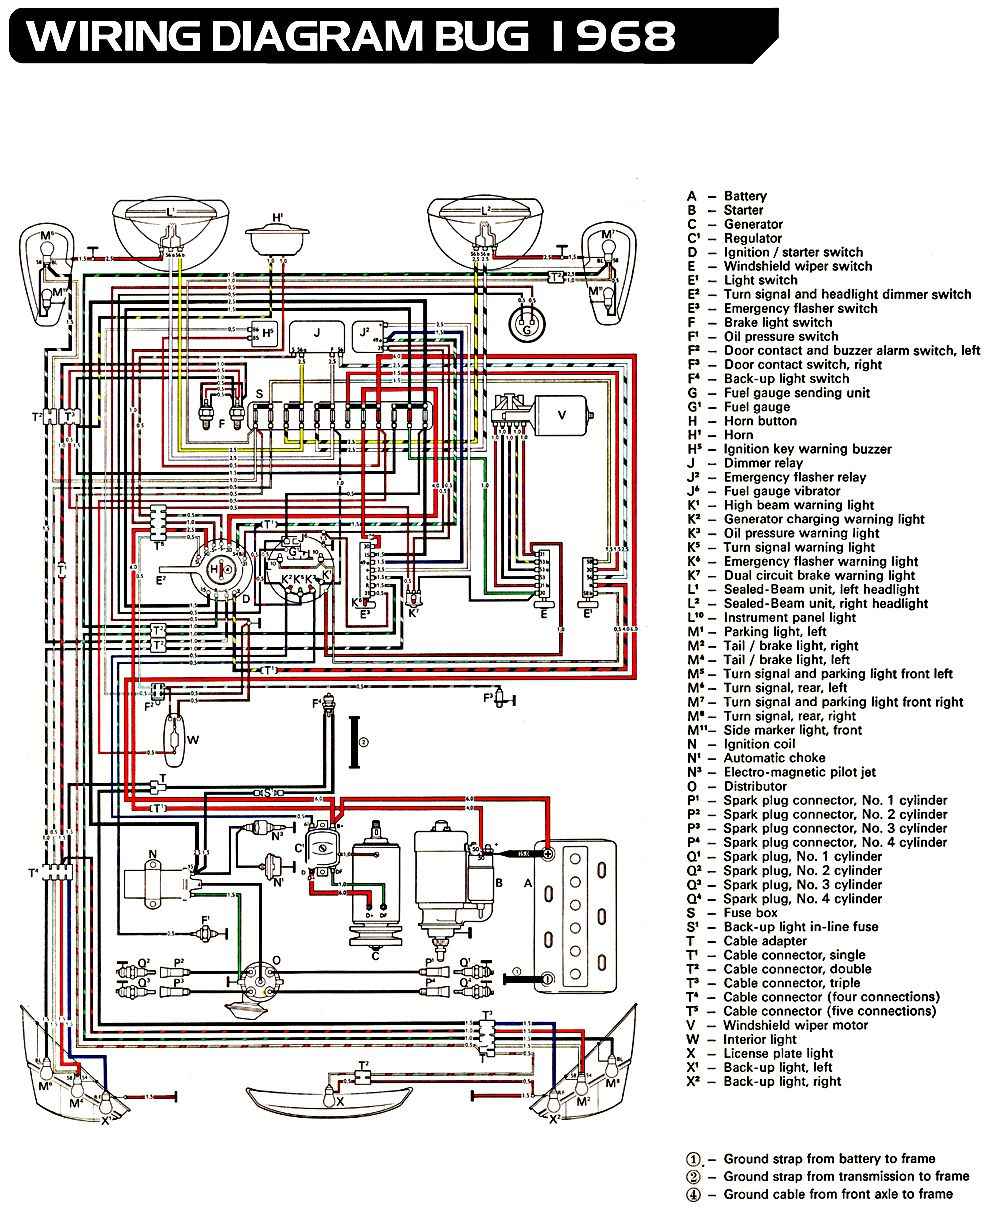 1971 volkswagen beetle engine wiring vw bug ignition wiring diagram - 73 vw wiring diagram free ...